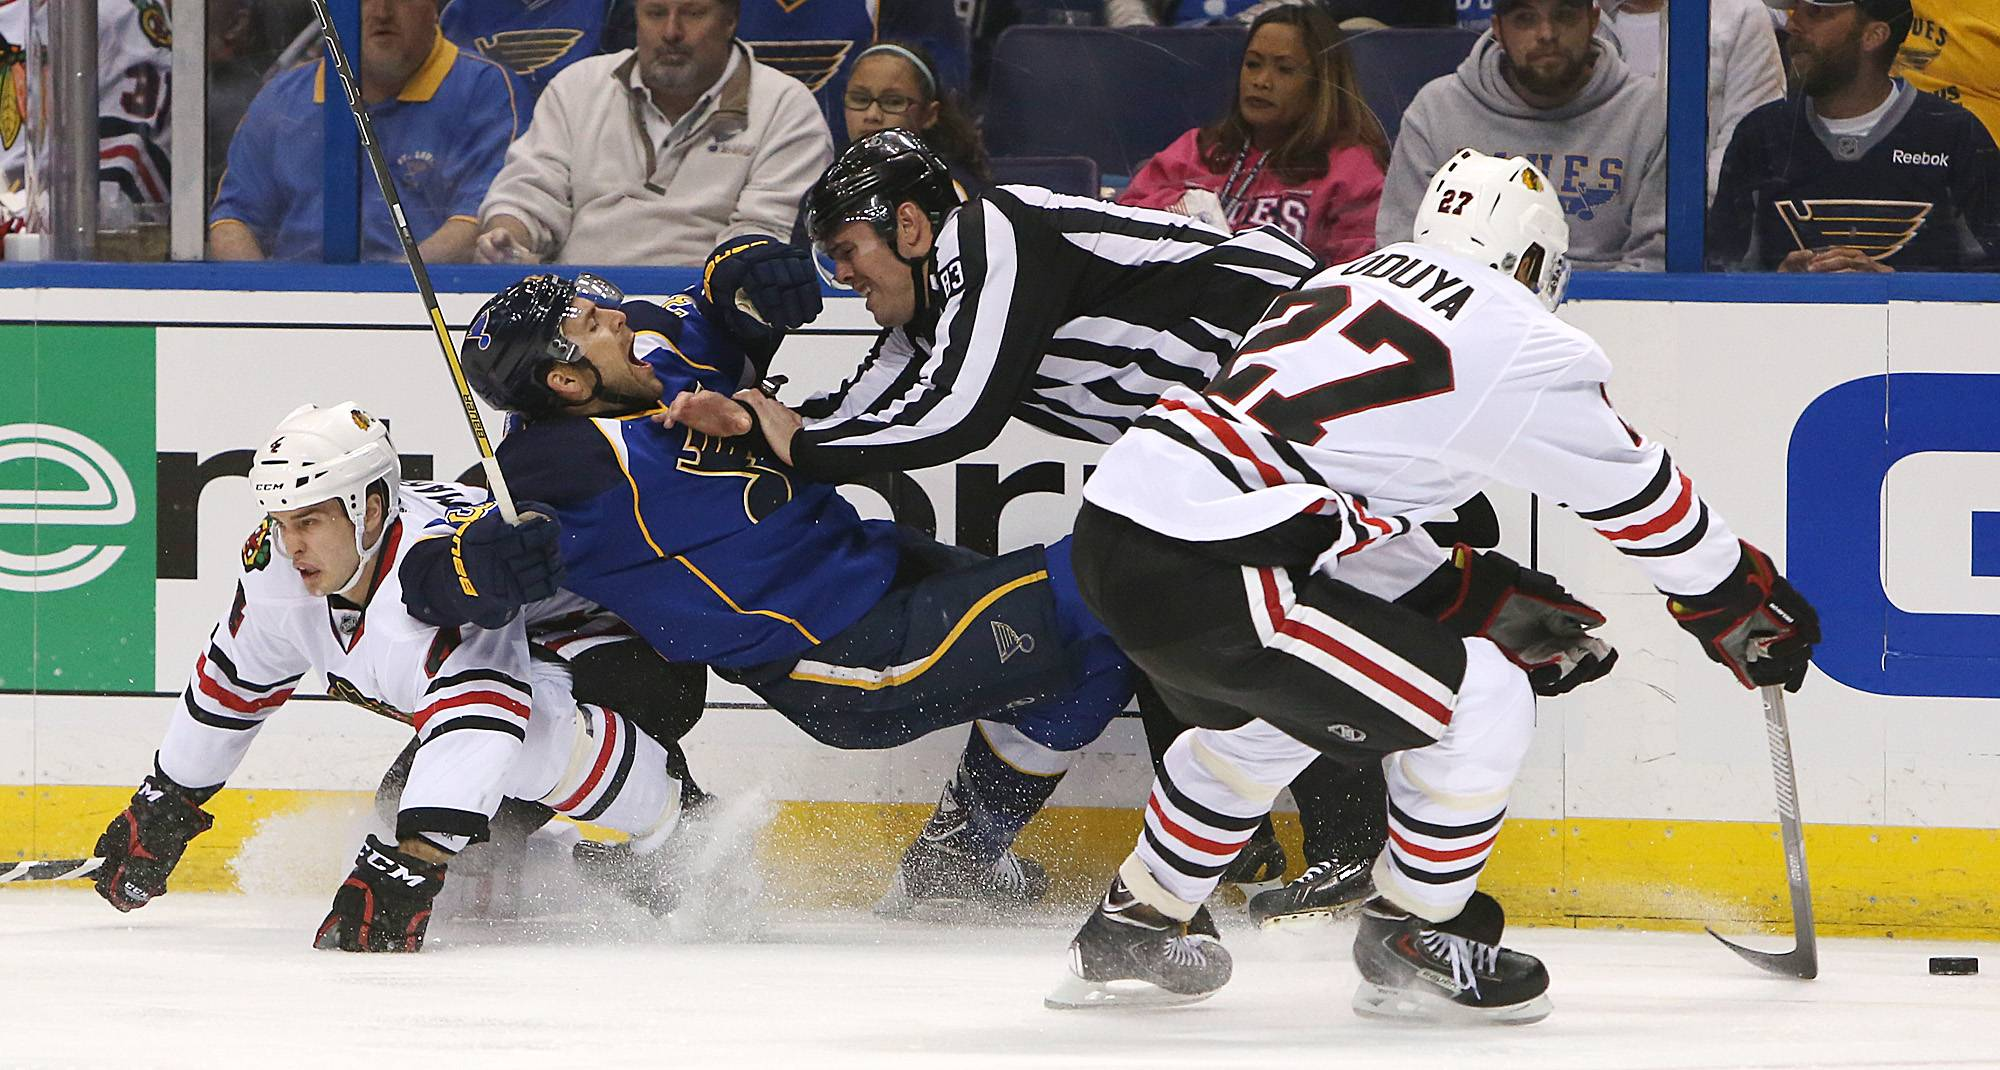 St. Louis Blues left wing Chris Porter loses possession of the puck as he is sandwiched between Chicago Blackhawks defenseman Niklas Hjalmarsson, left, and linesman Matt MacPherson during the first period .At right is Blackhawks' Johnny Oduya.